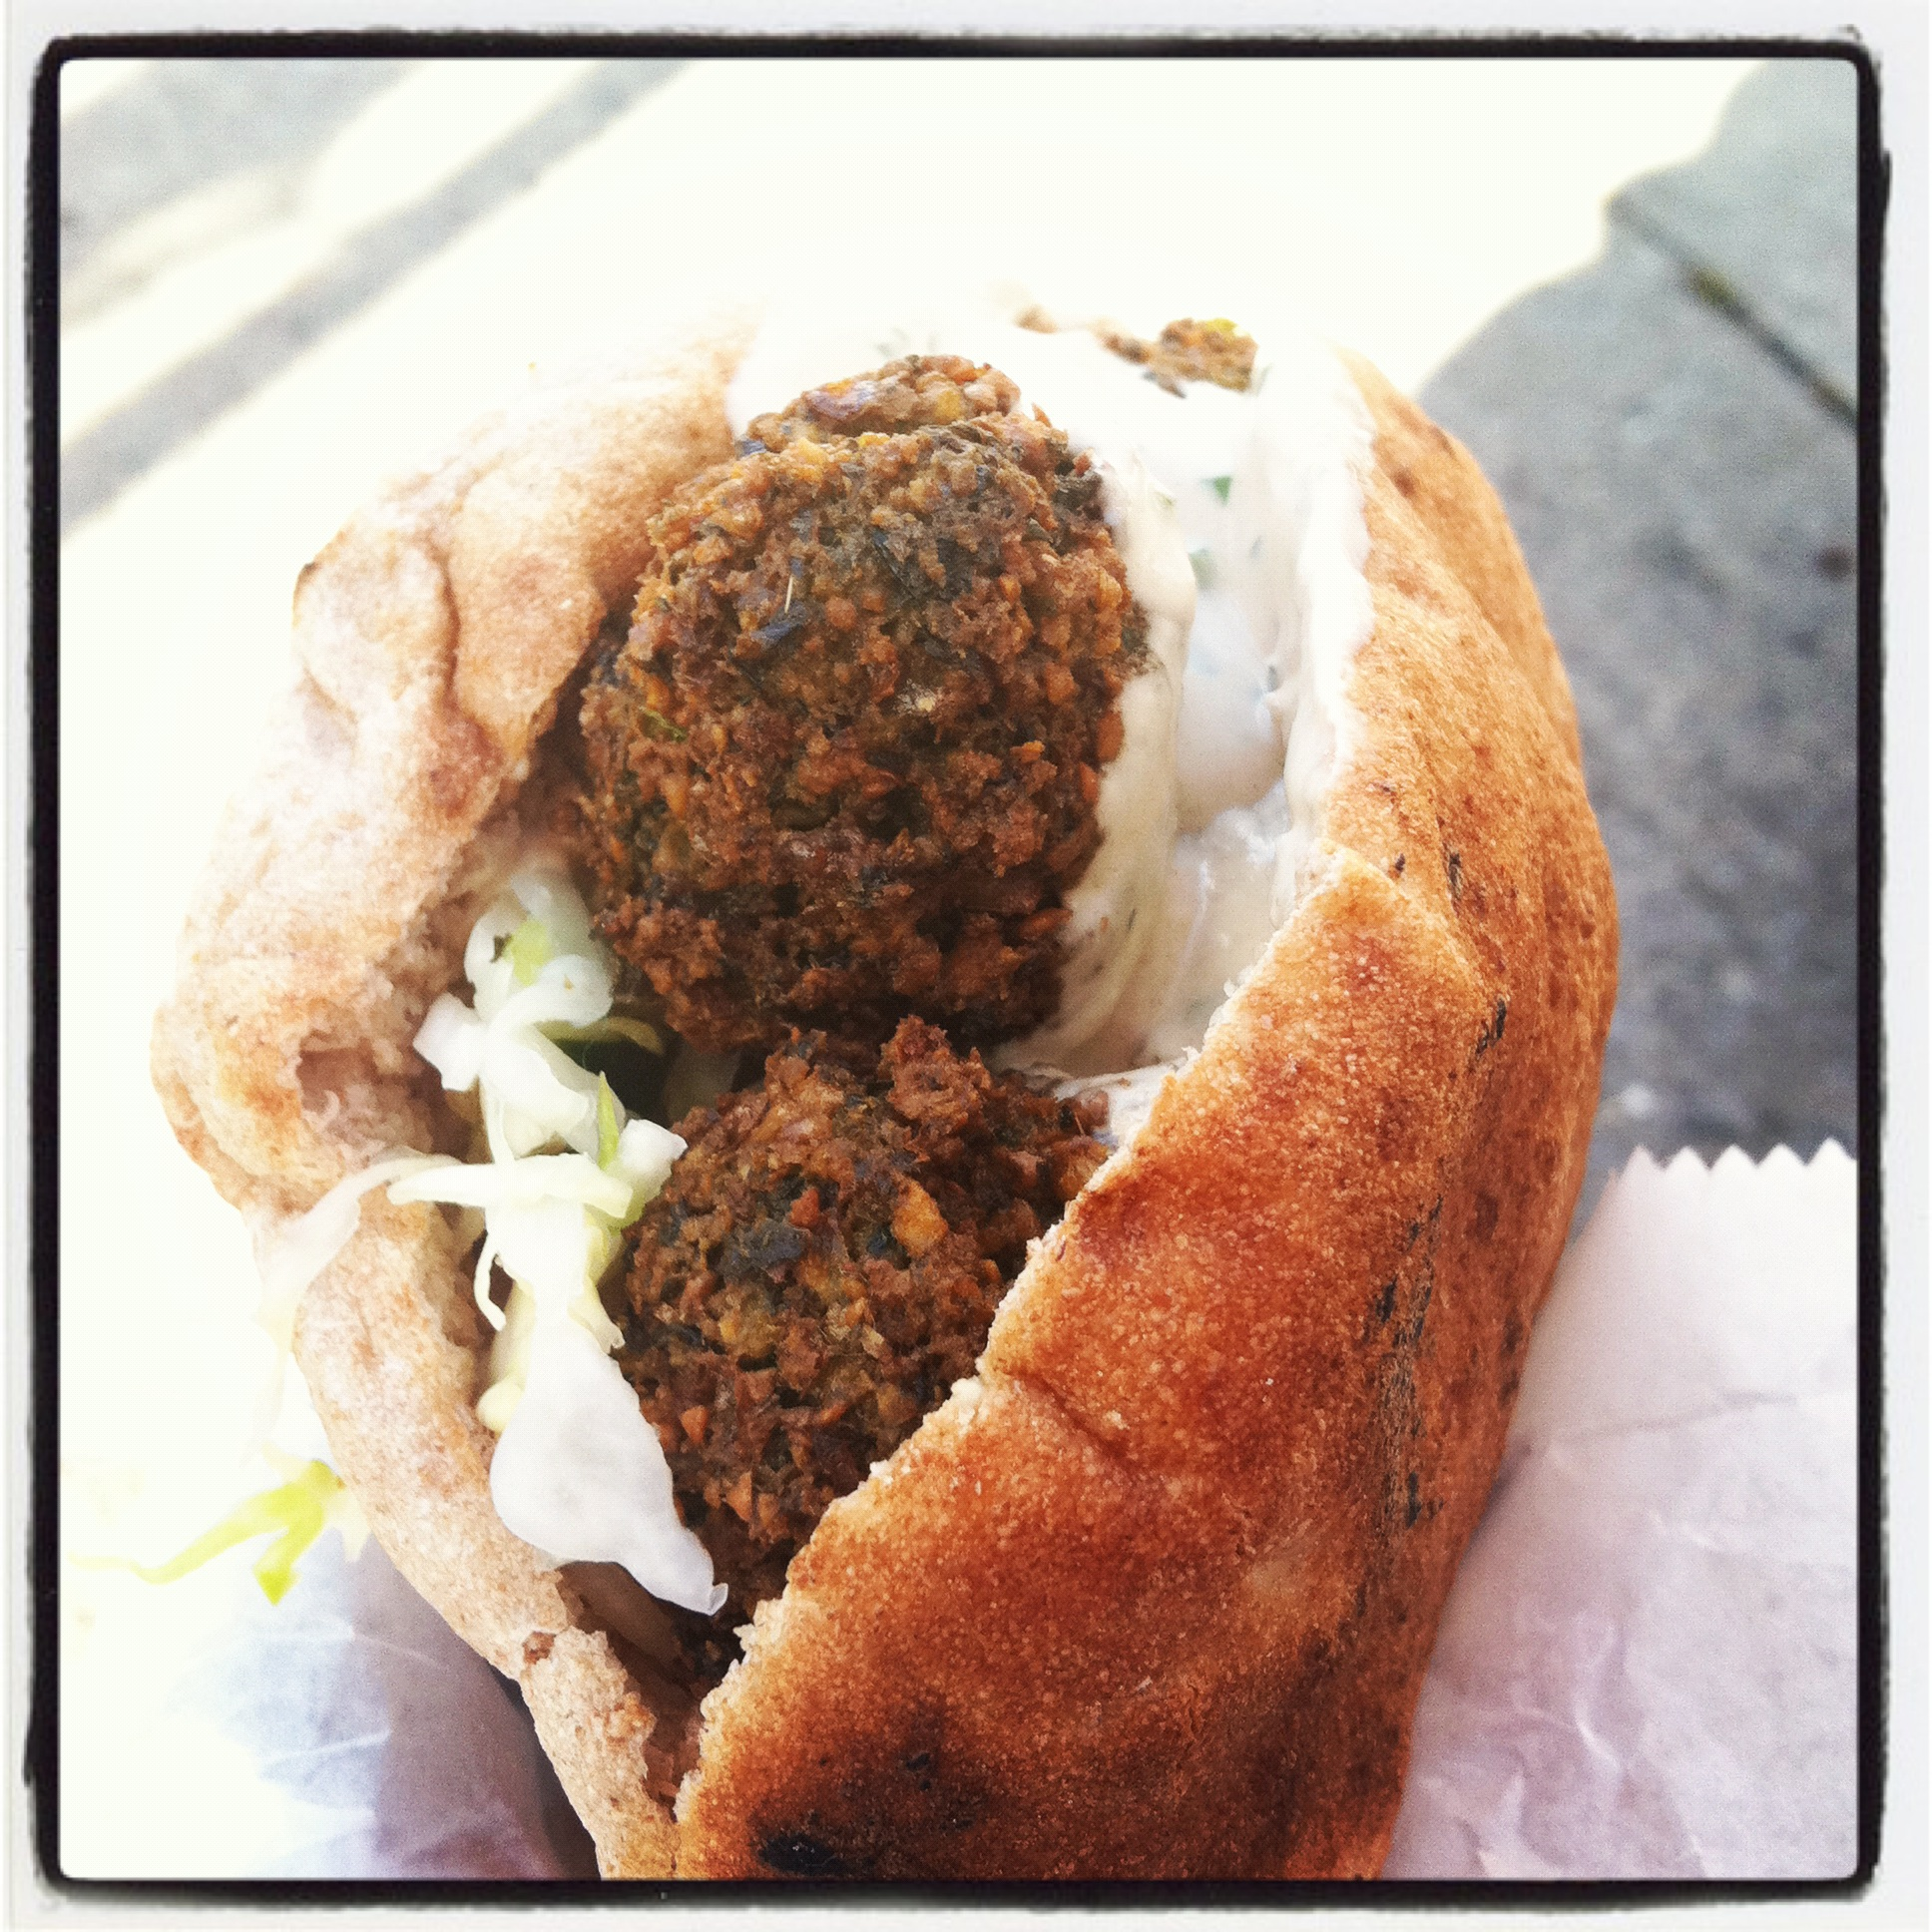 Falafel Sandwich: choose one falafel flavor, with hummus, israeli salad, pickled cabbage and tahini sauce